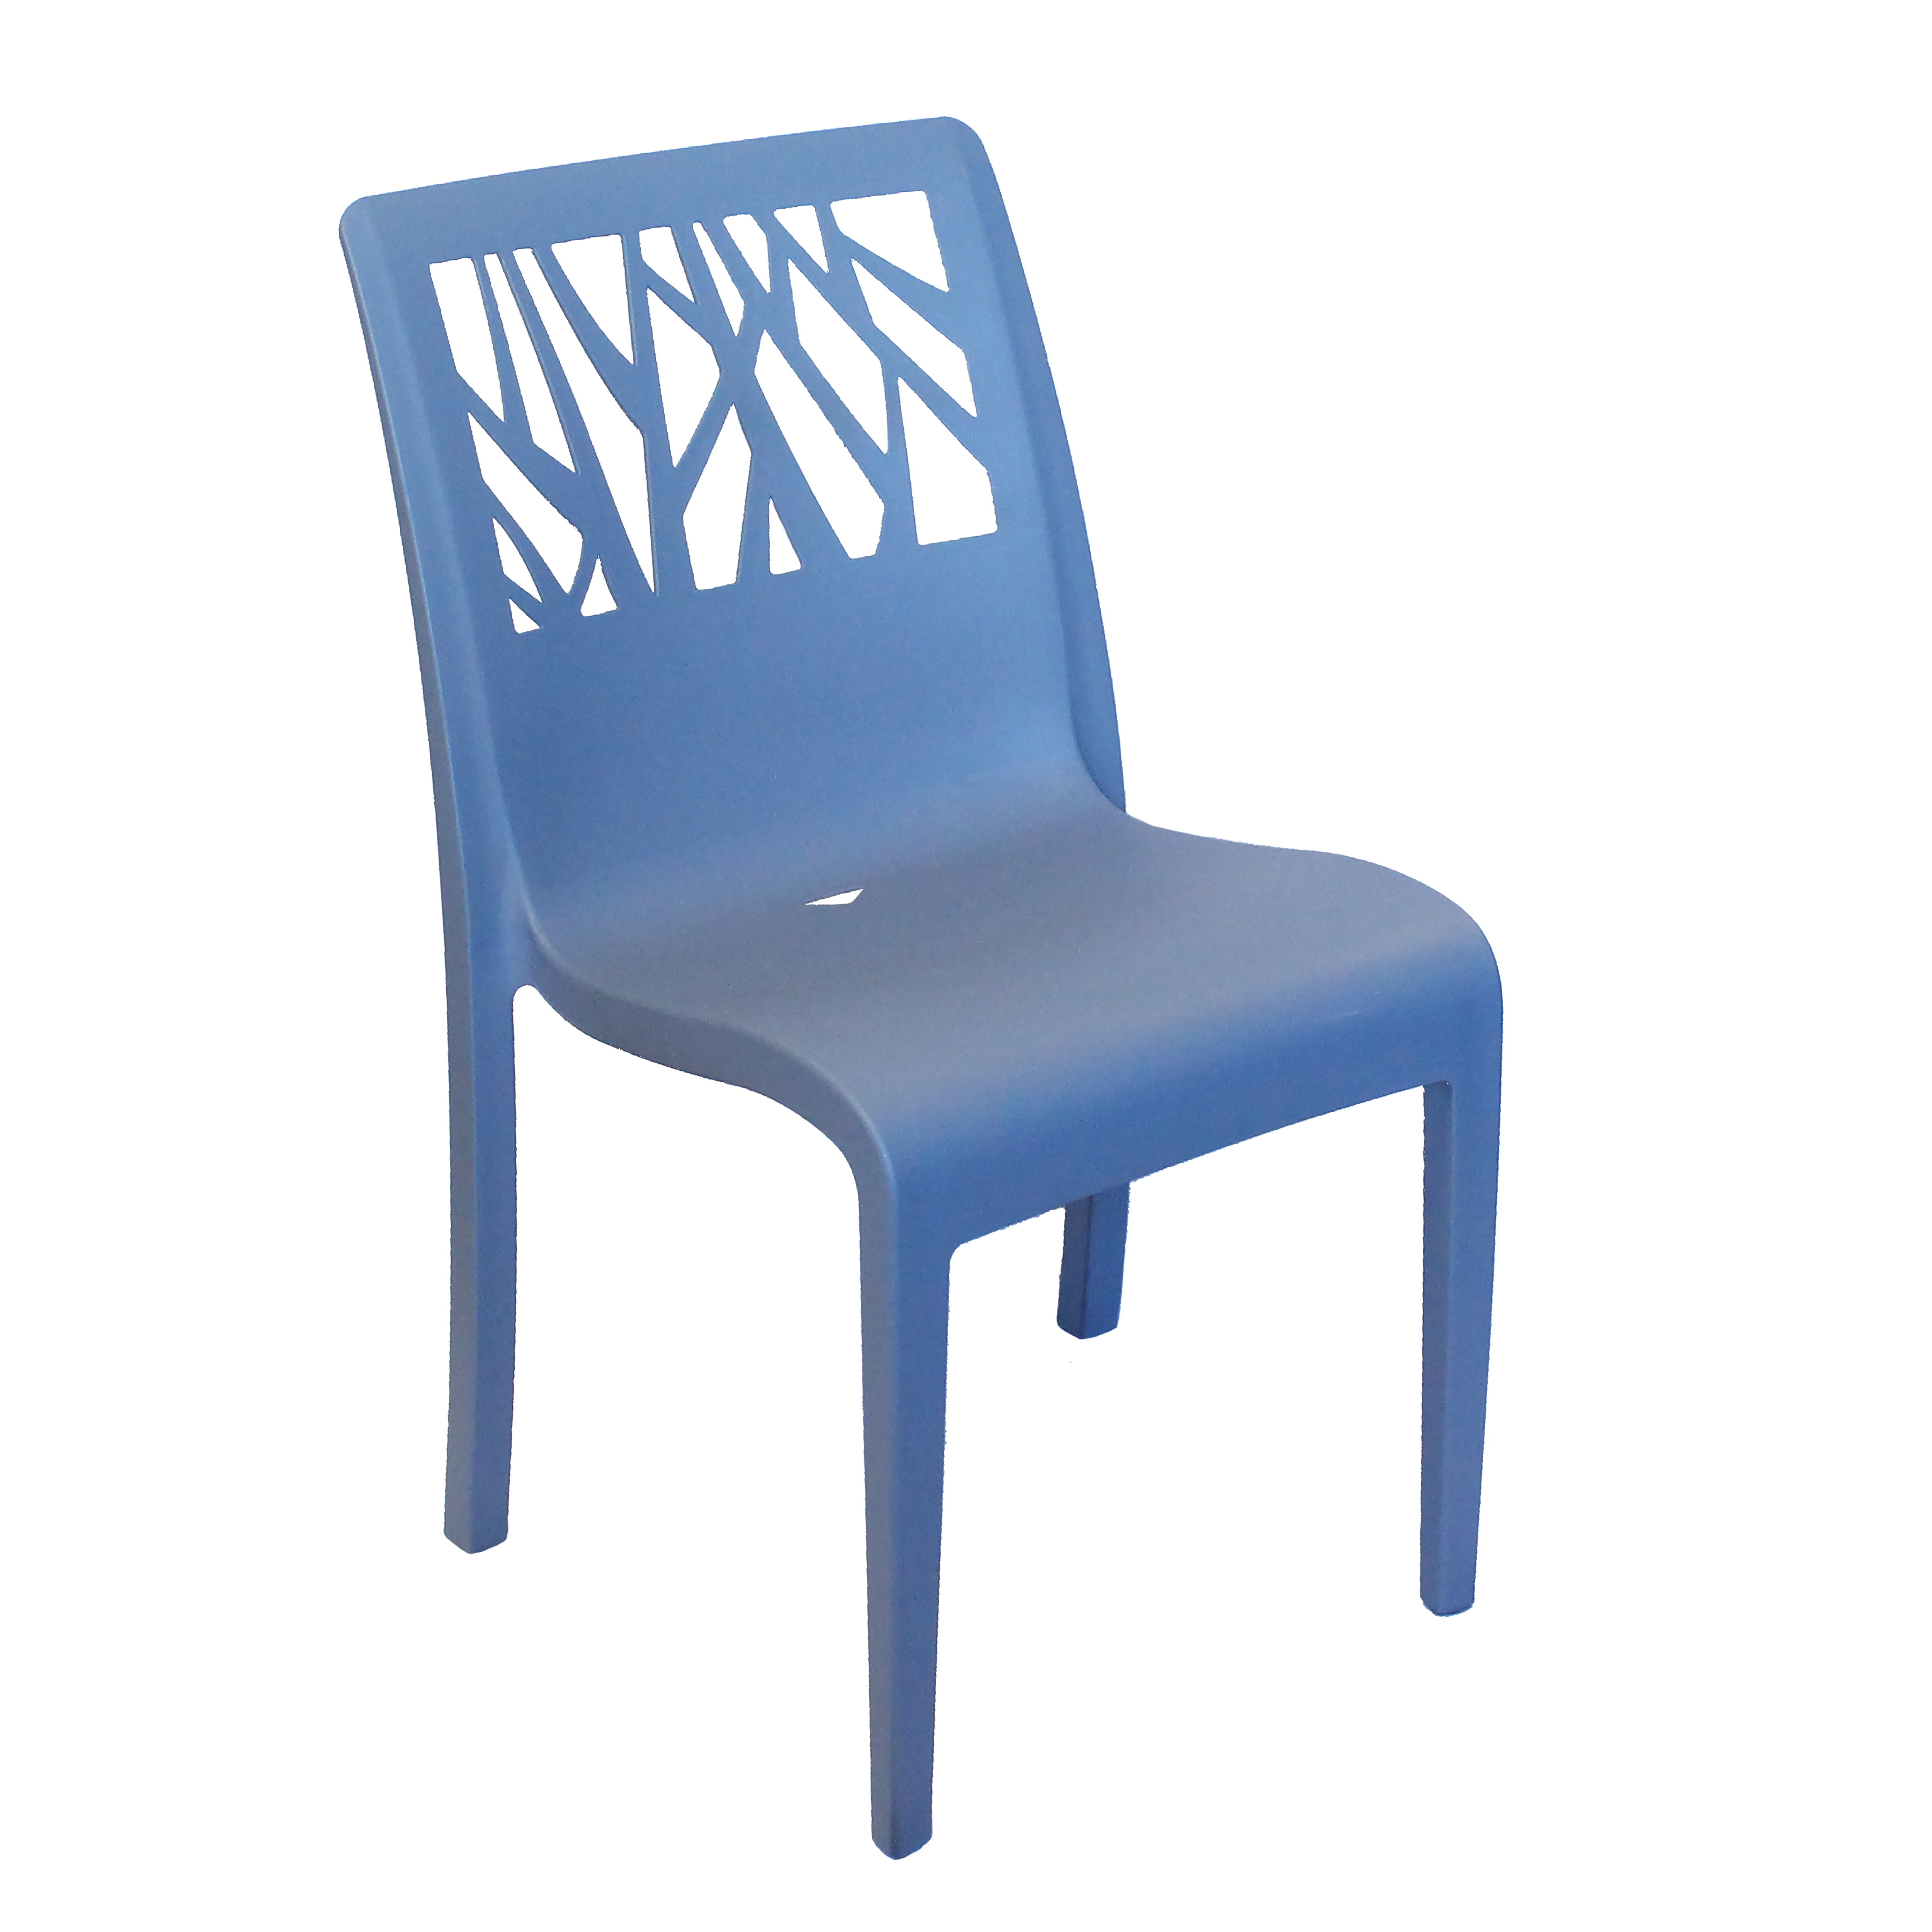 Grosfillex US117680 chair, side, stacking, outdoor